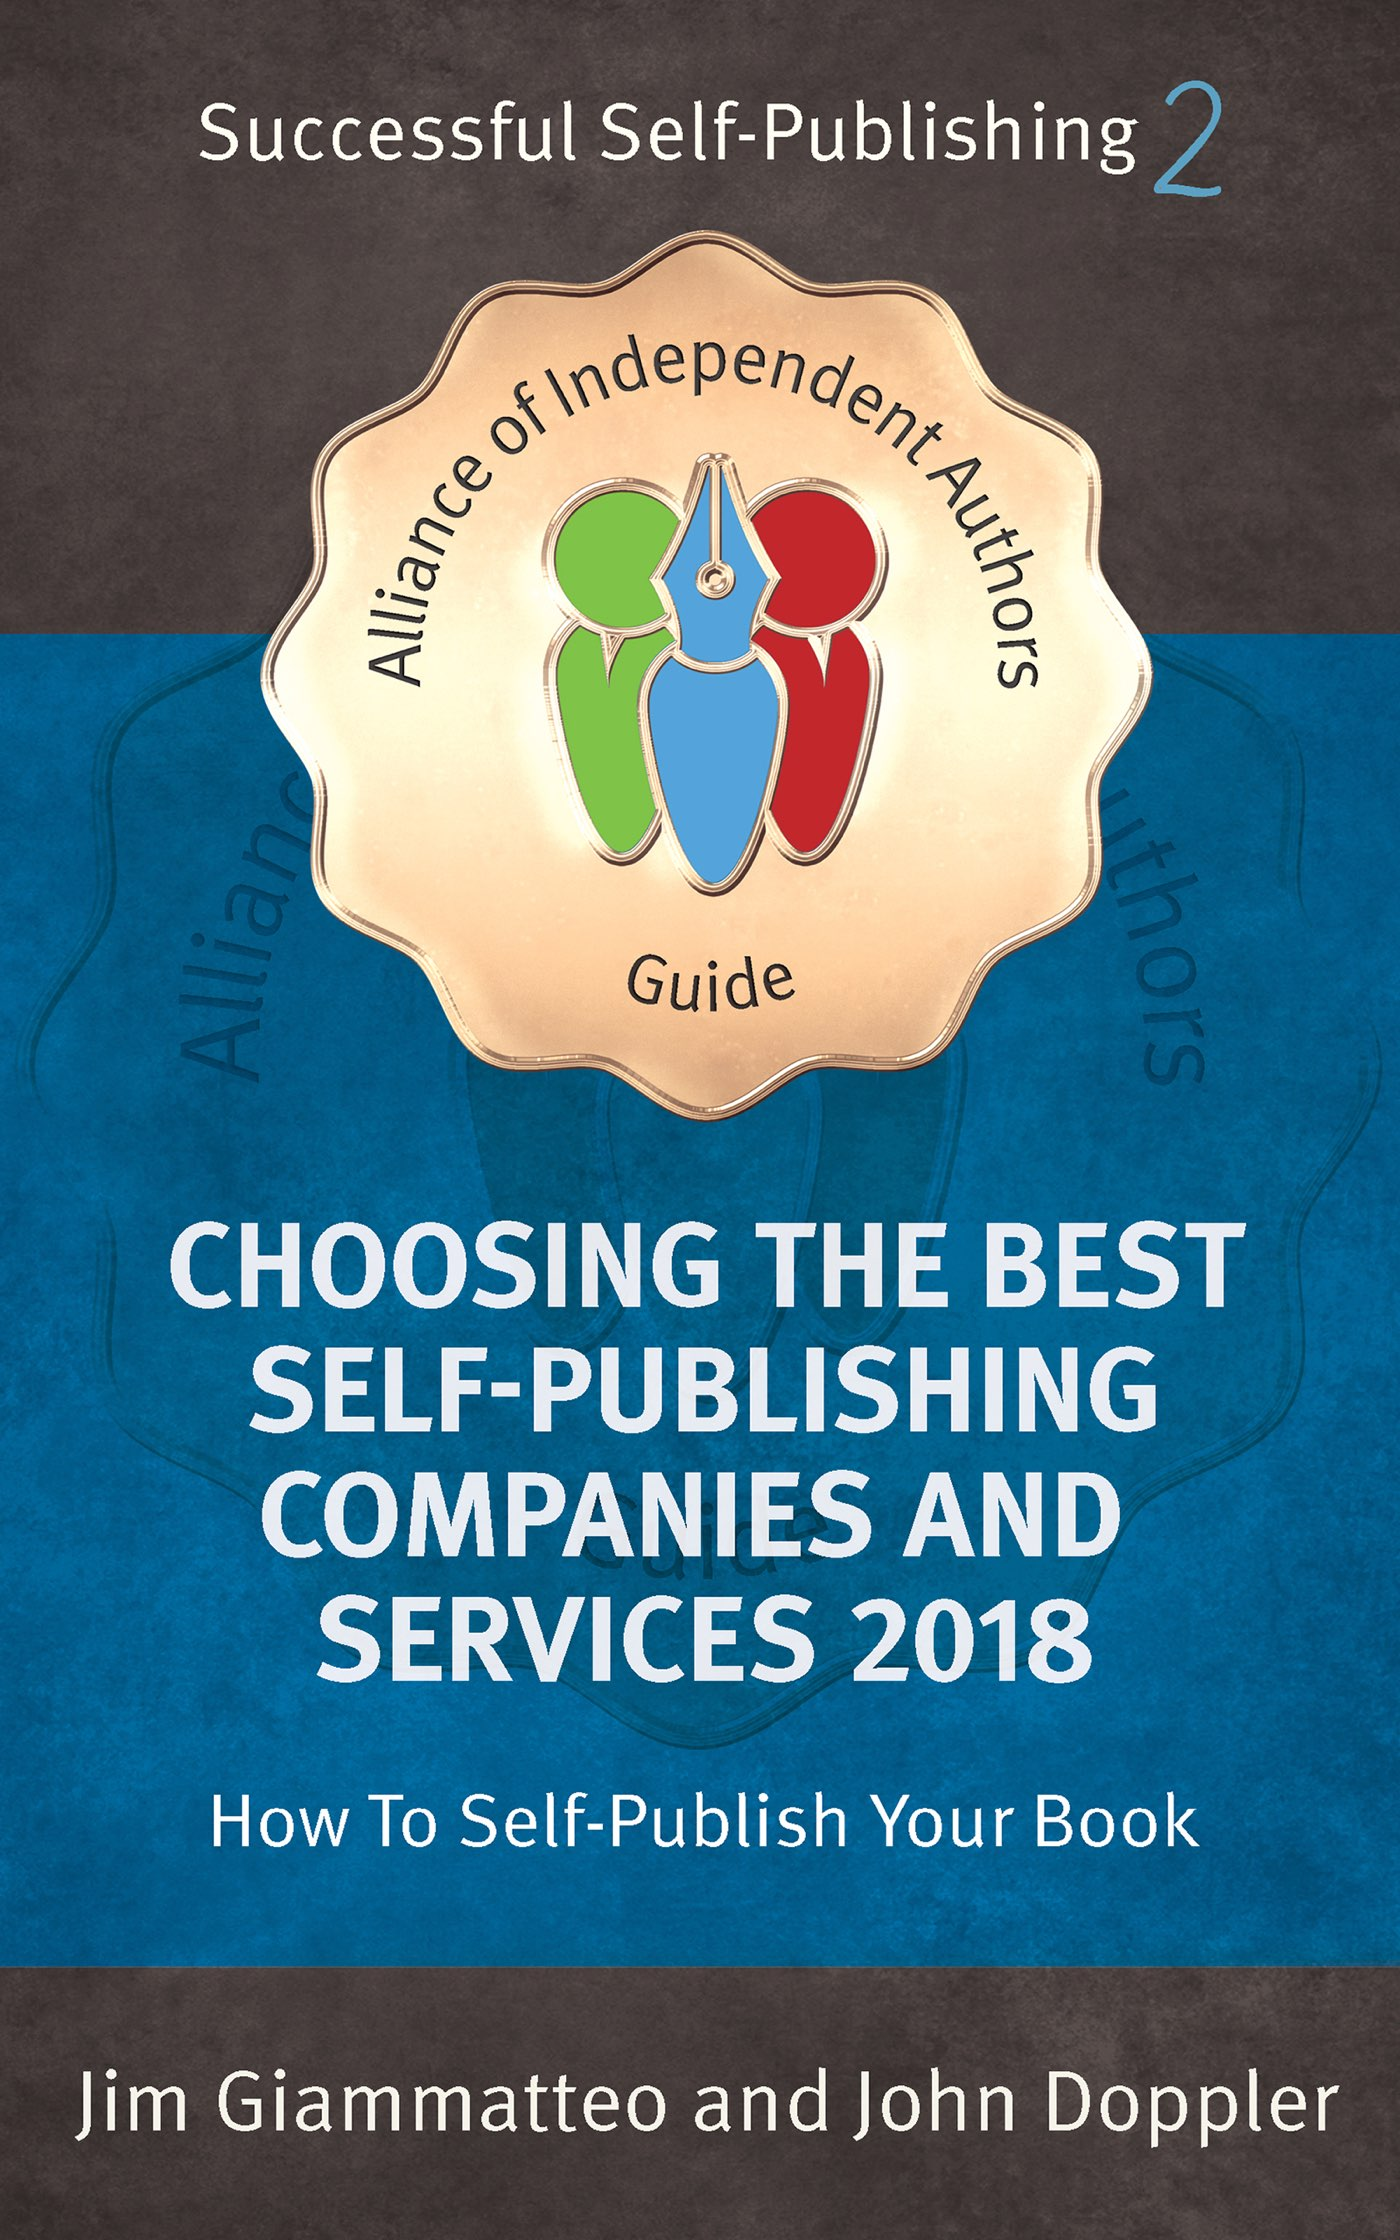 Choosing the Best Self-Publishing Companies and Services 2018: How To Self-Publish Your Book